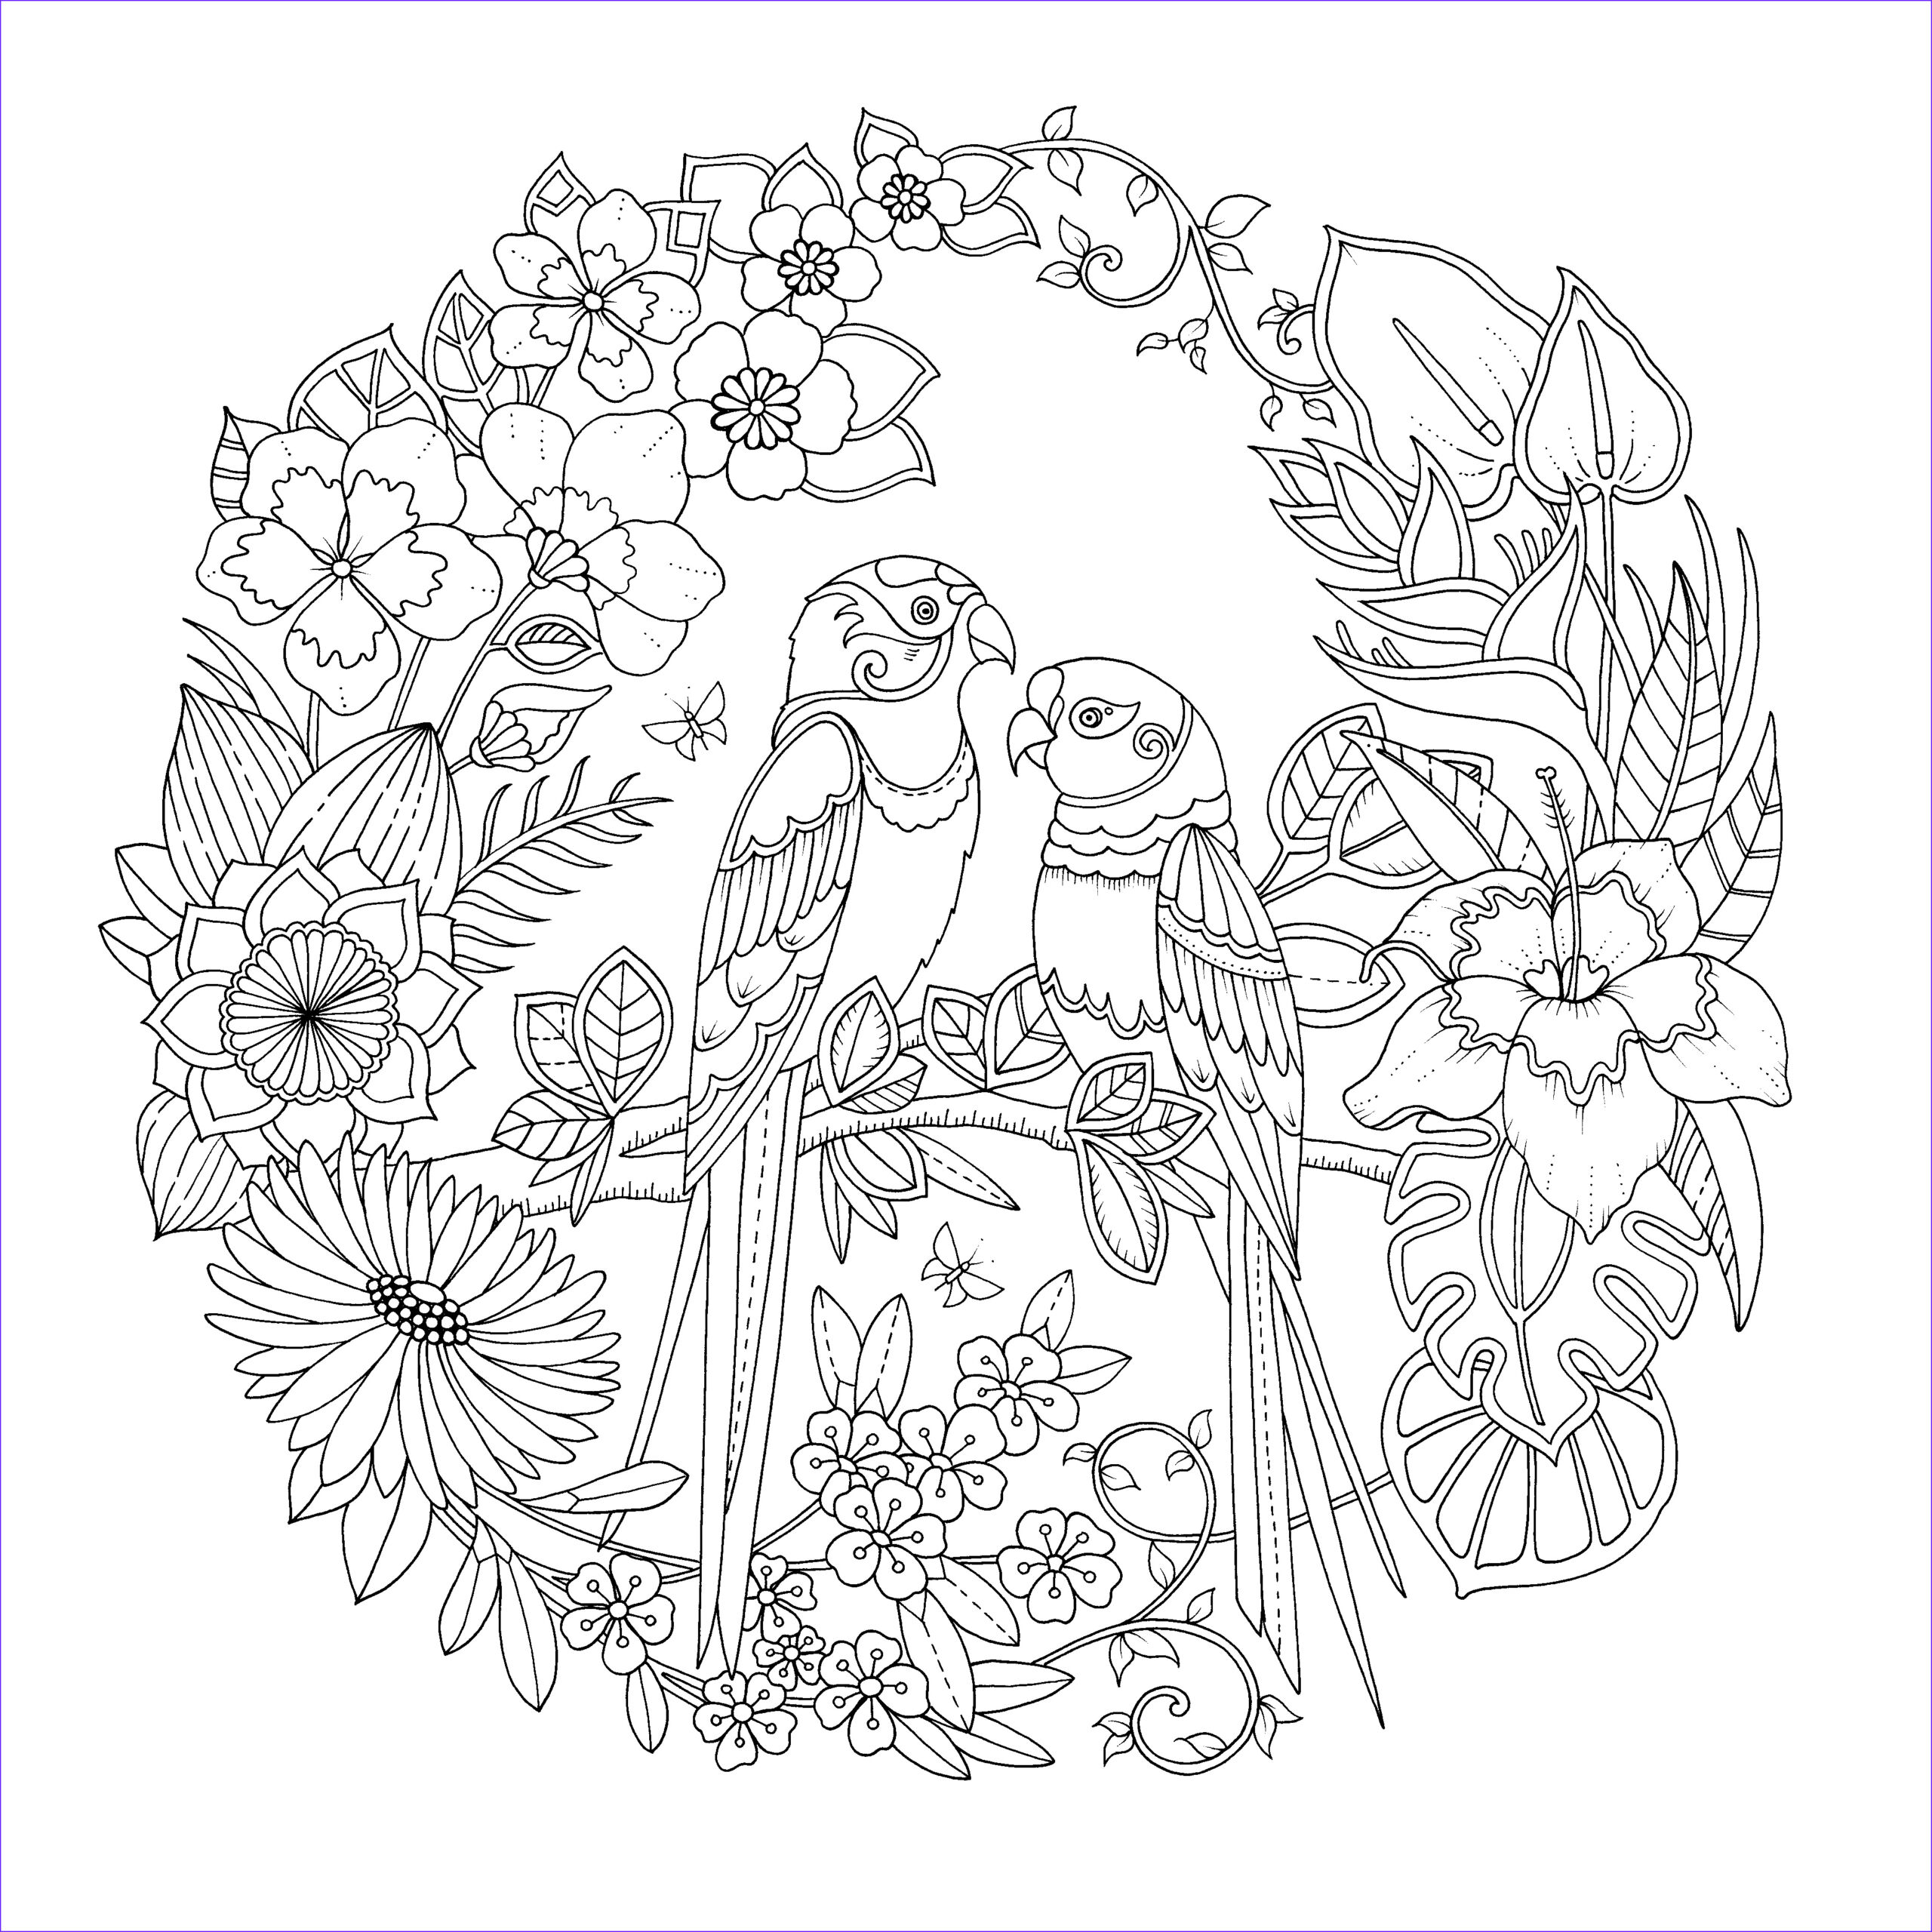 Basford Coloring Book Beautiful Collection Magical Jungle Colouring Book By Johanna Basford